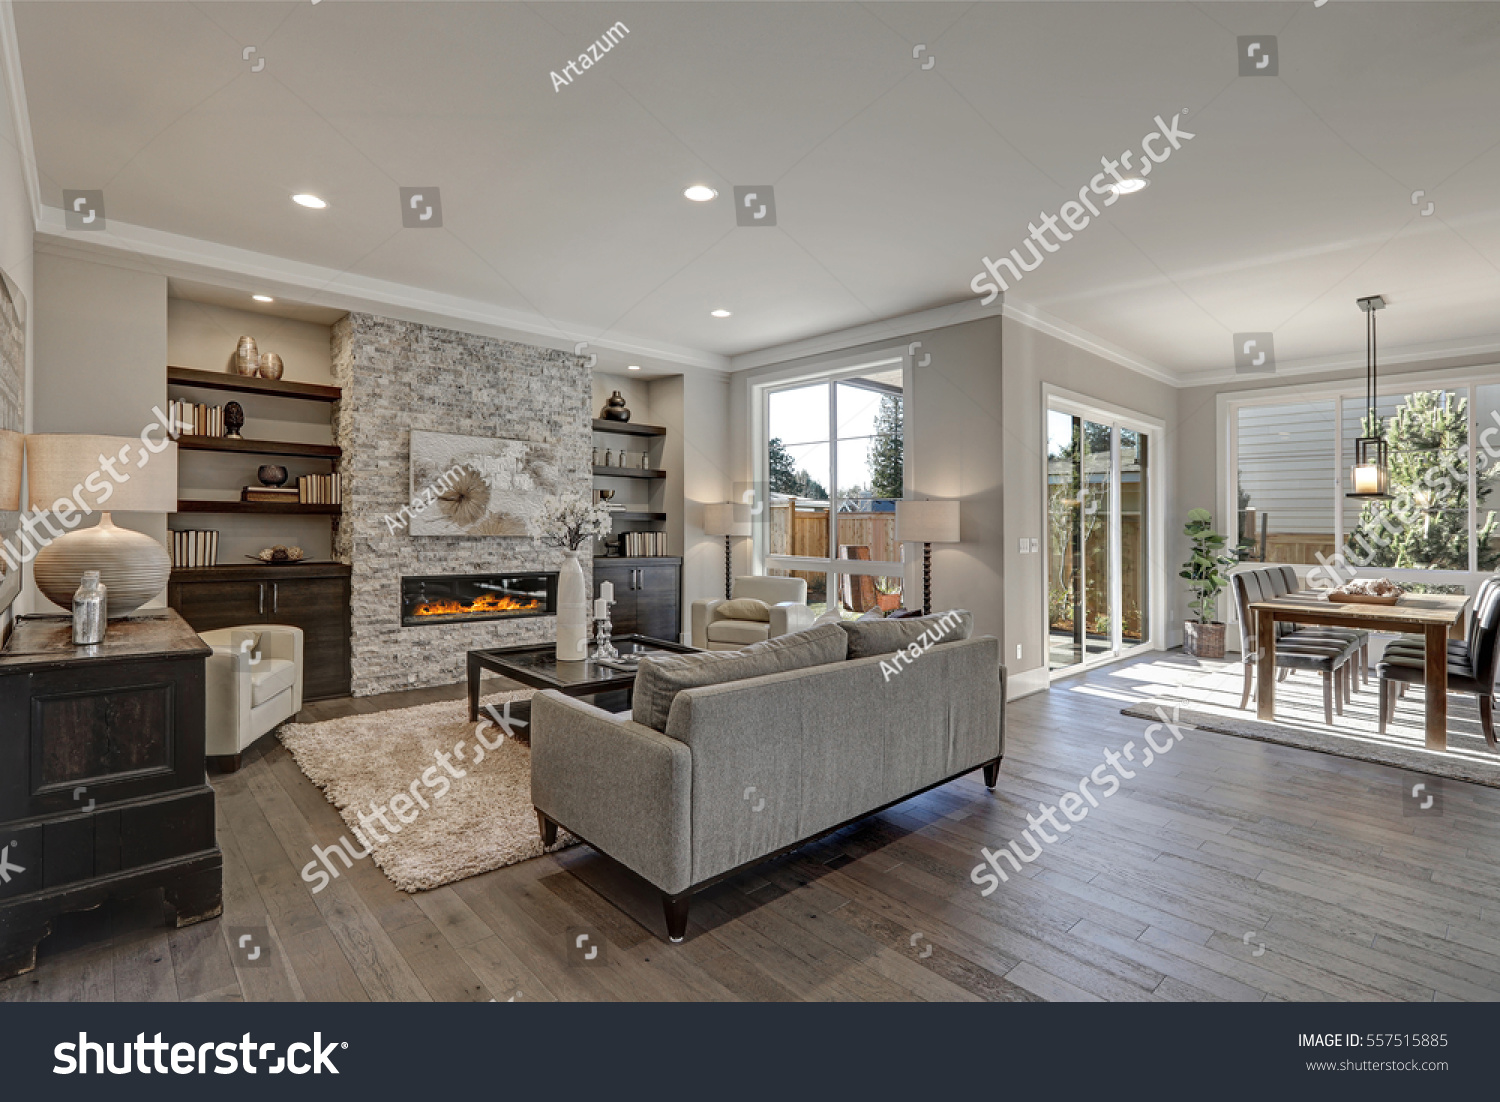 Living Room Interior In Gray And Brown Colors Features Gray Sofa Atop Dark  Hardwood Floors Facing Part 89